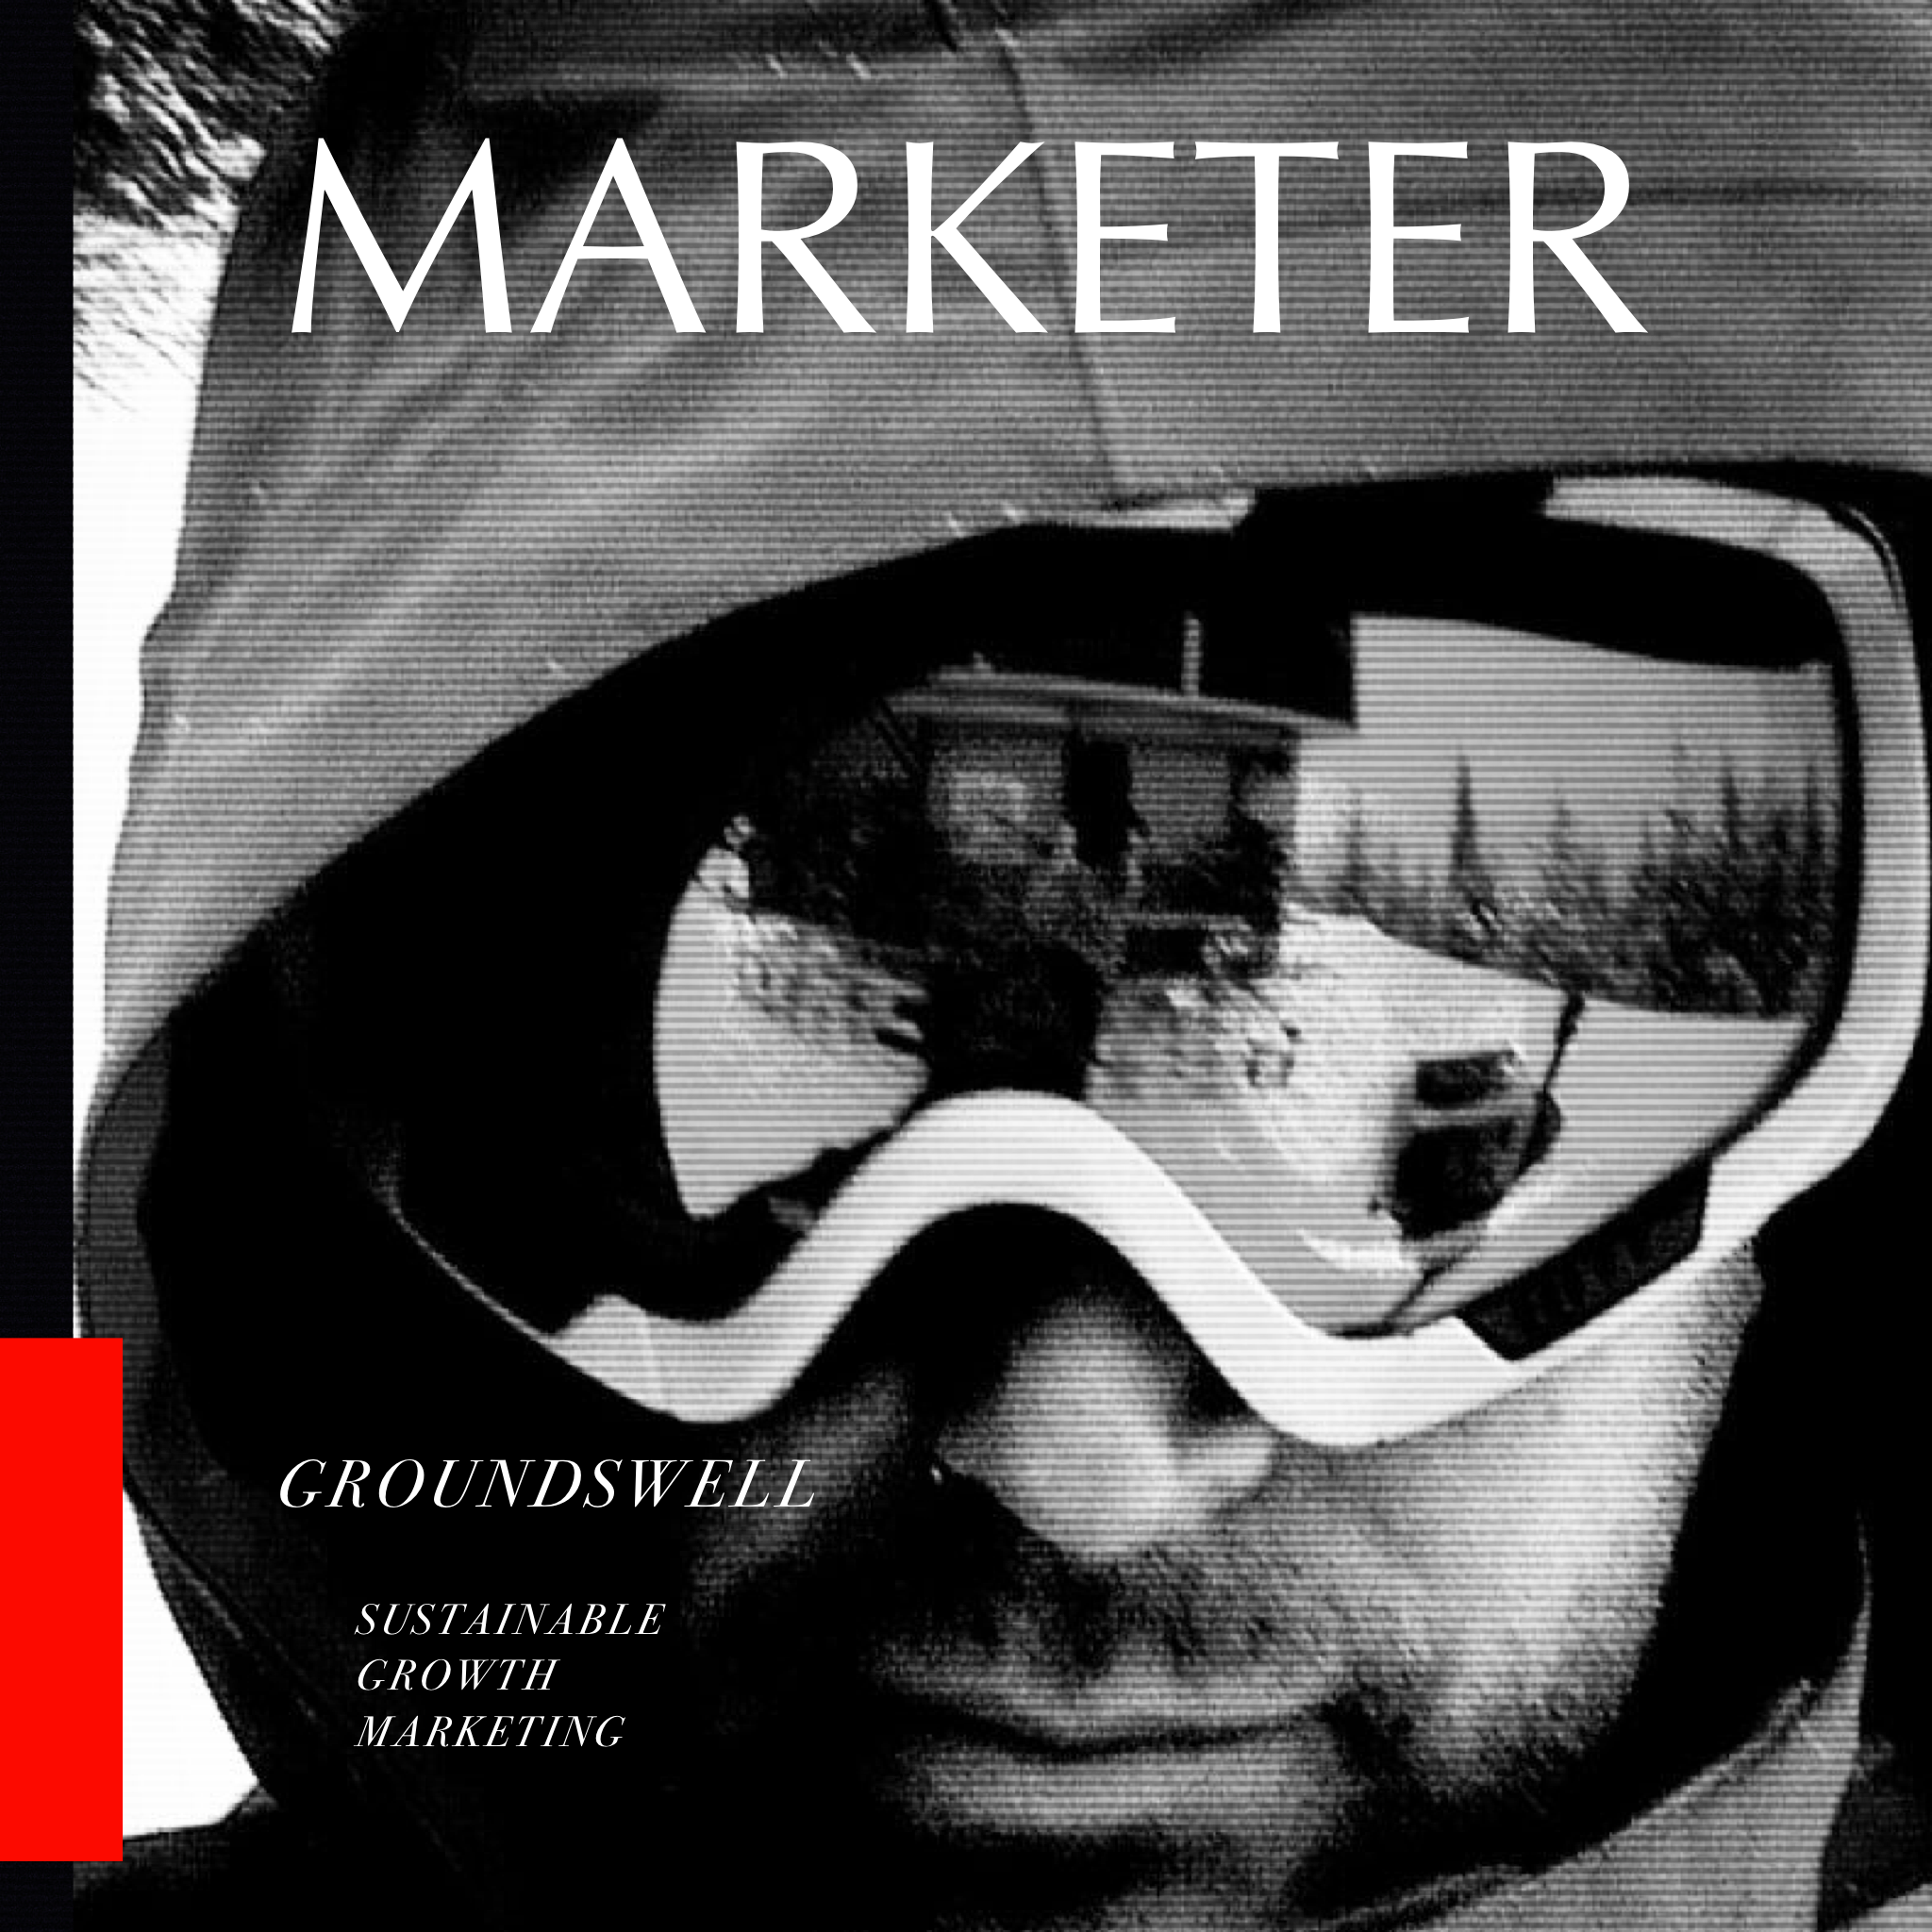 Marketer Launch image